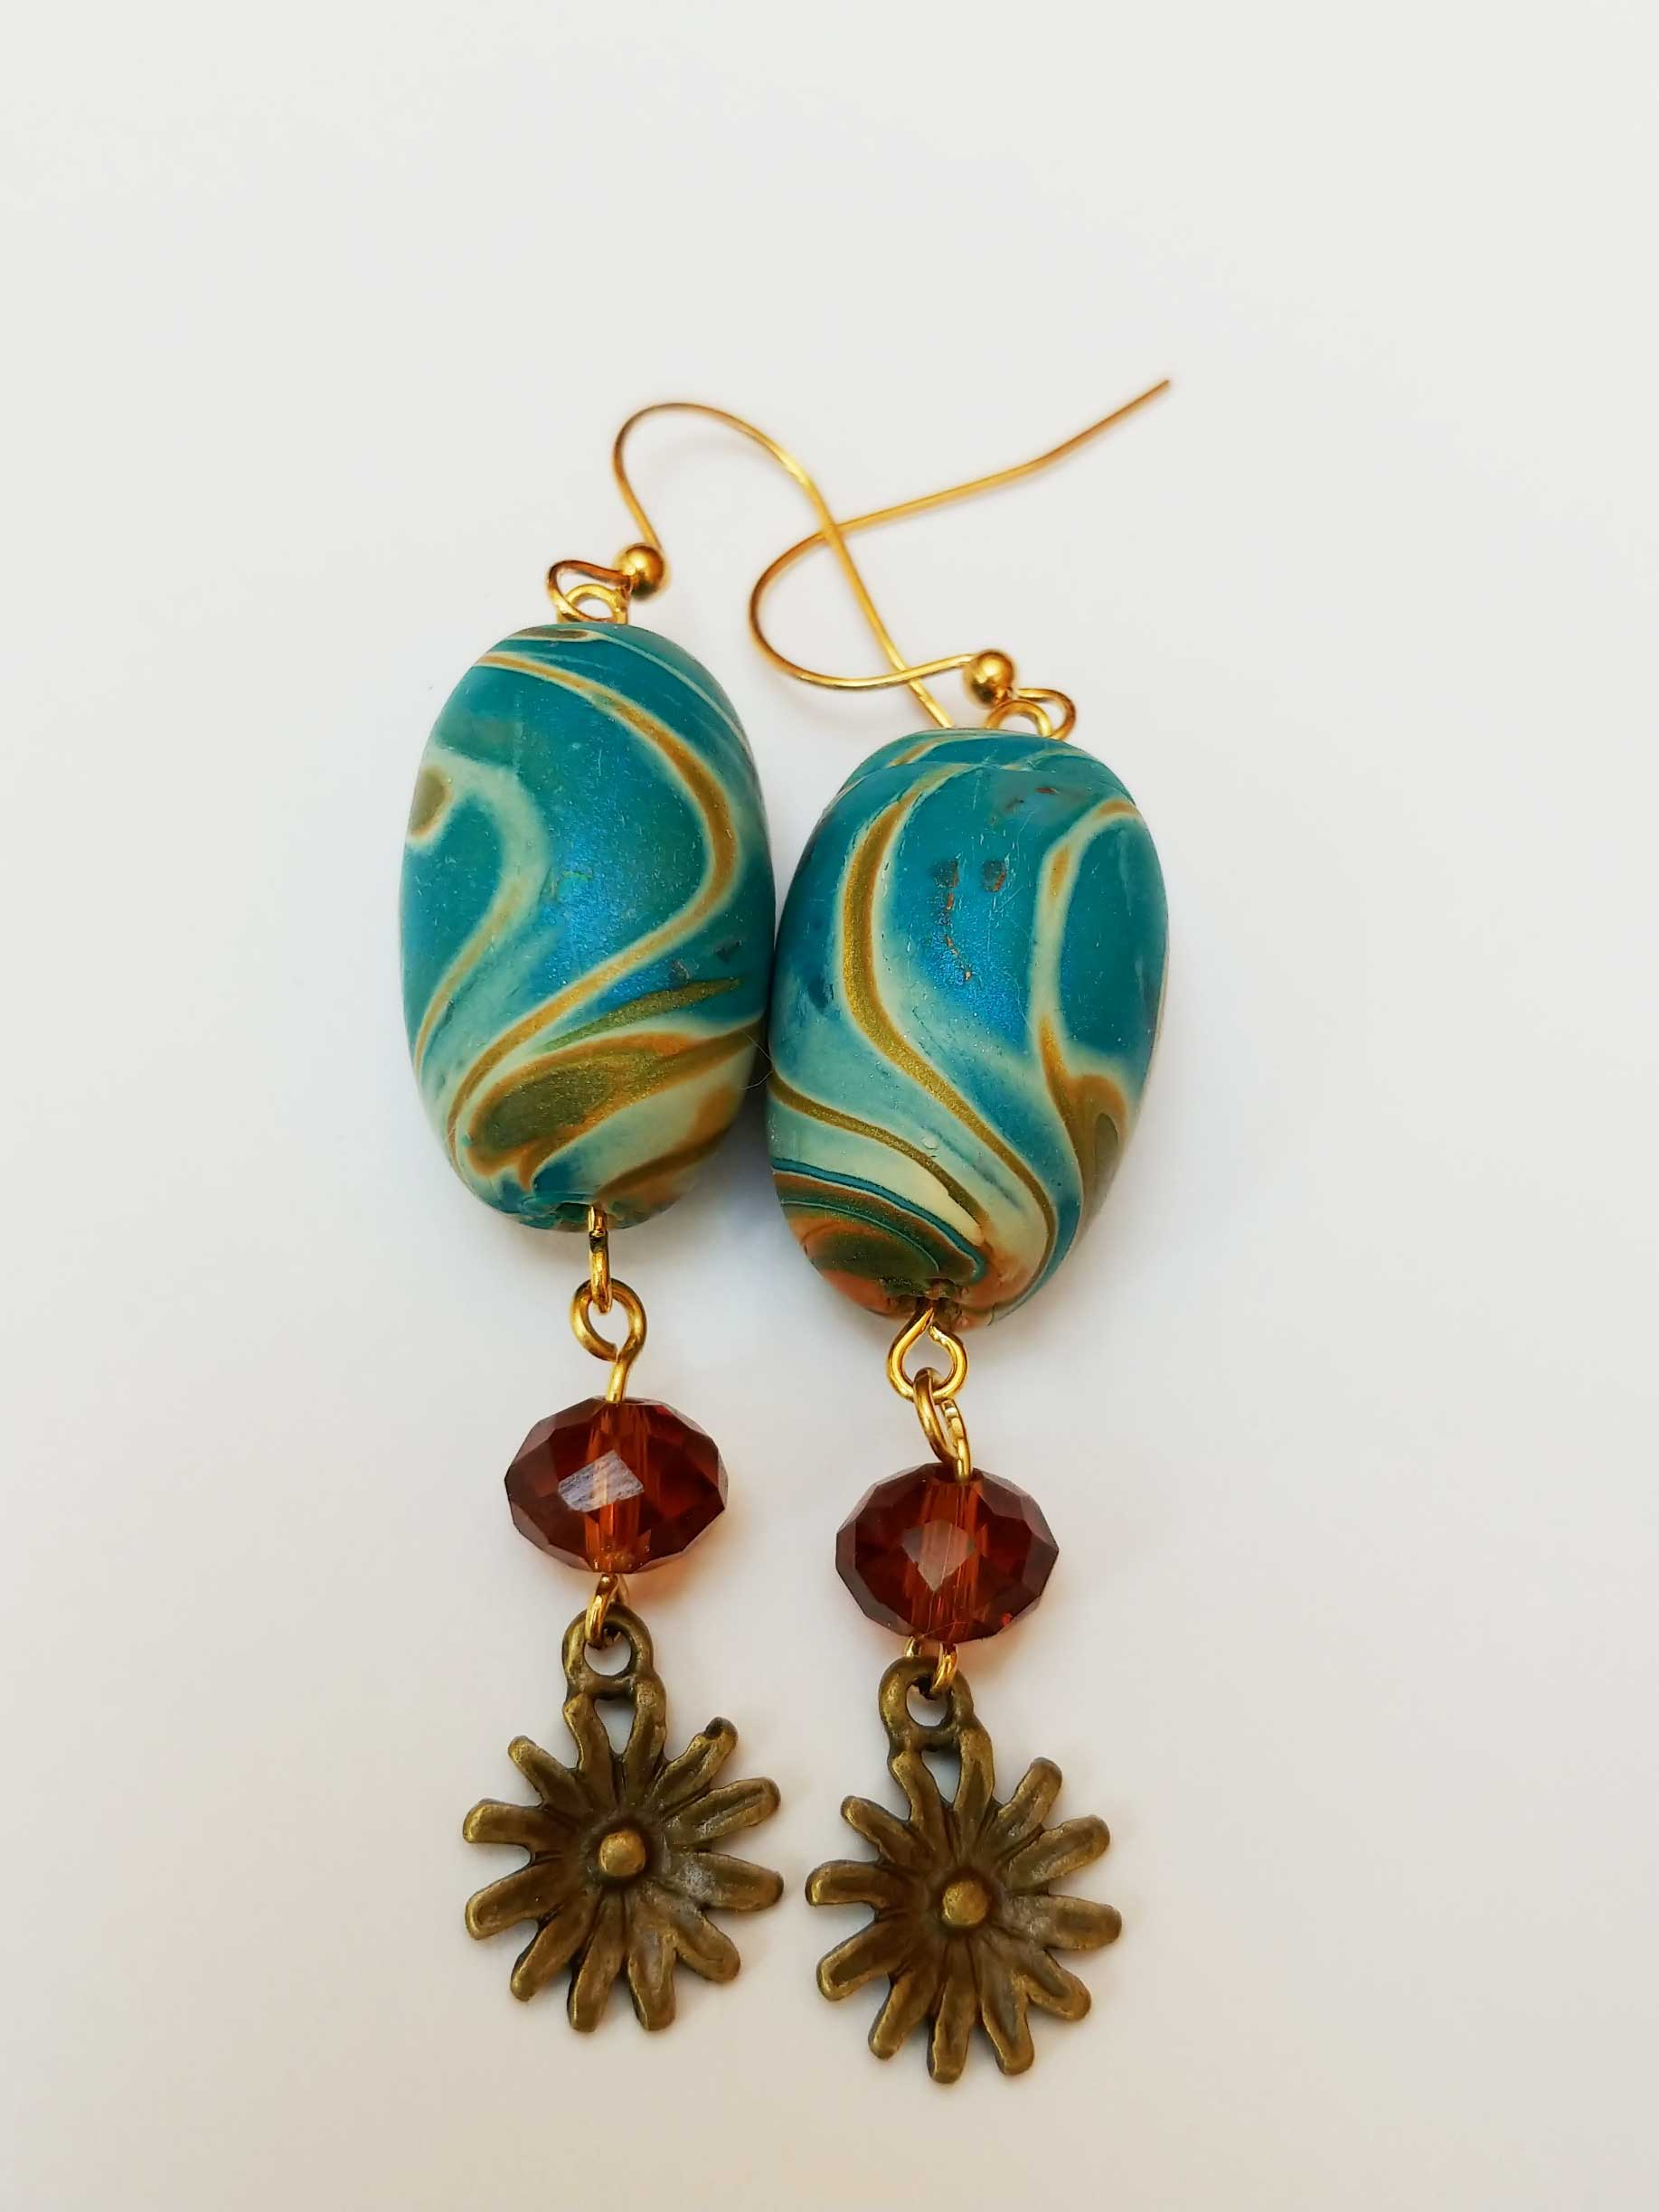 Veneer Bead Earrings - Liz Stefano - Pro